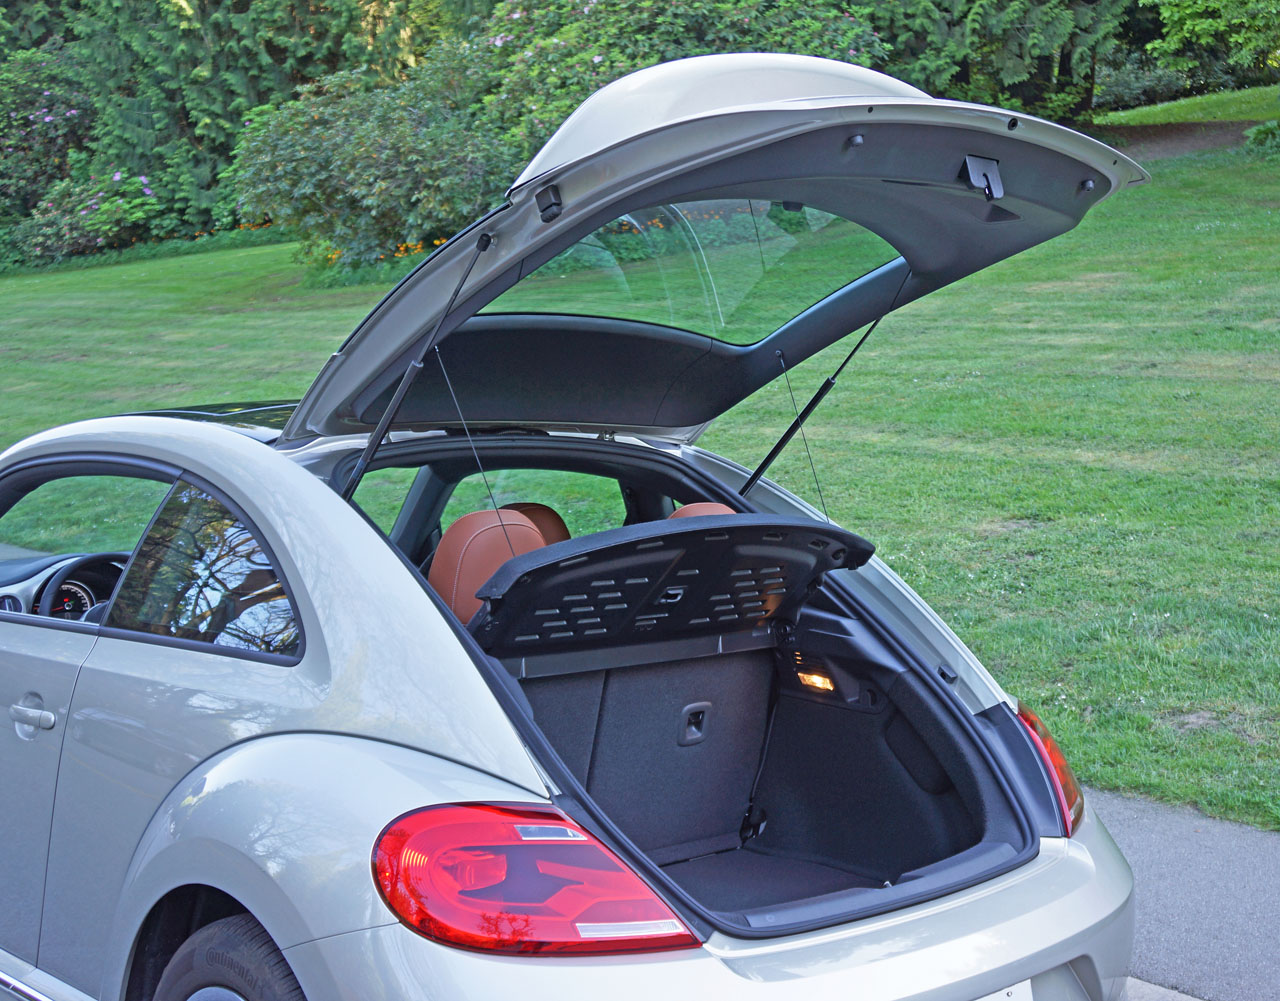 eurp bugs web news r photos reviews and volkswagen exclusive beetle